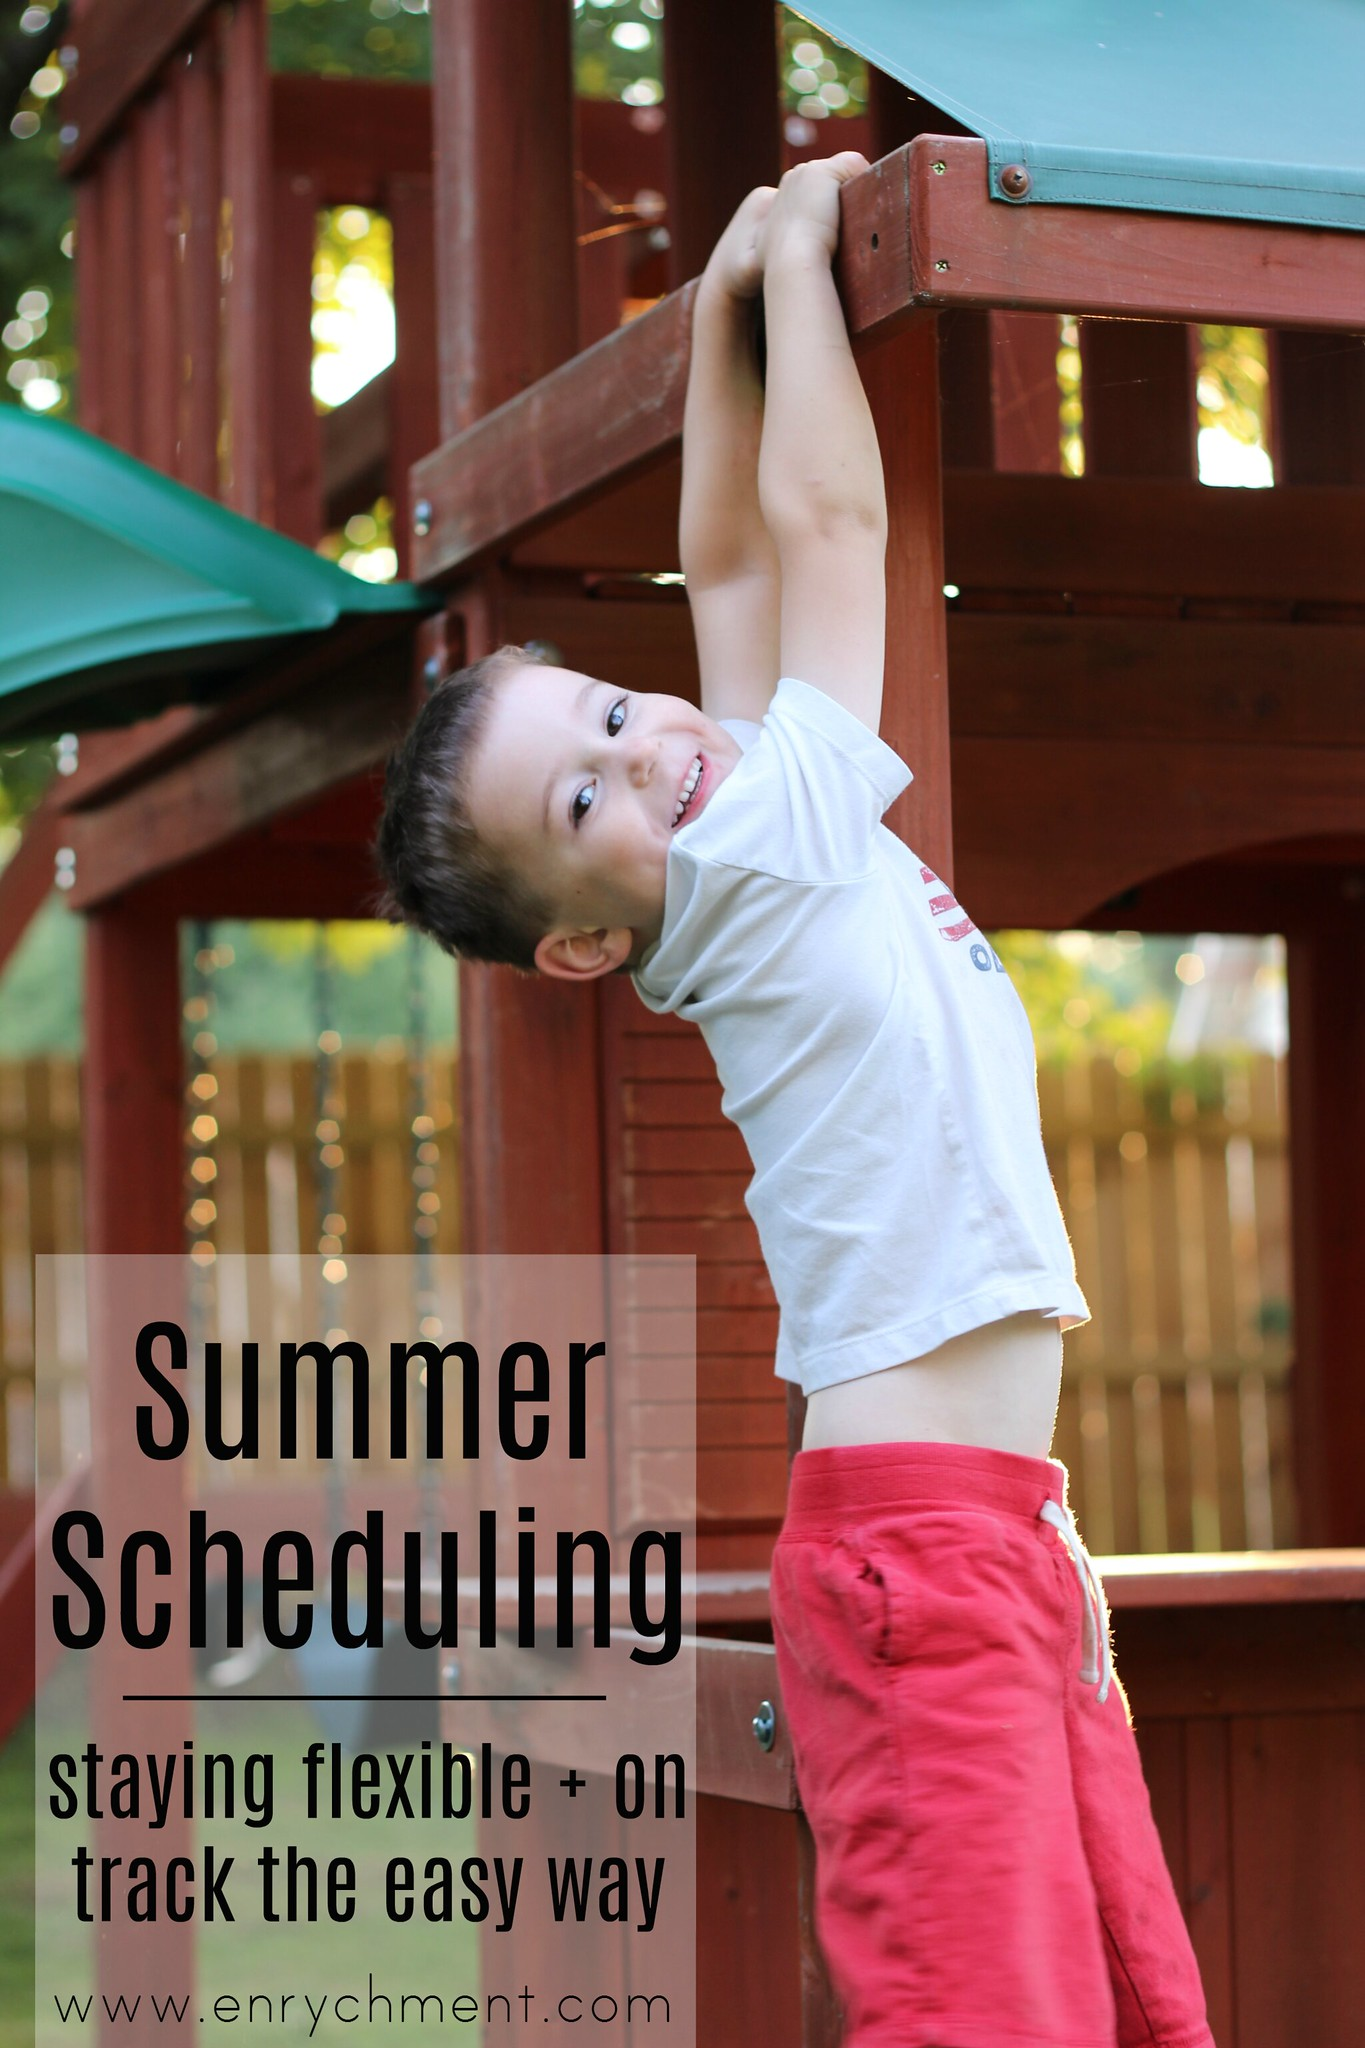 Making a flexible summer schedule to have a fun and productive summer